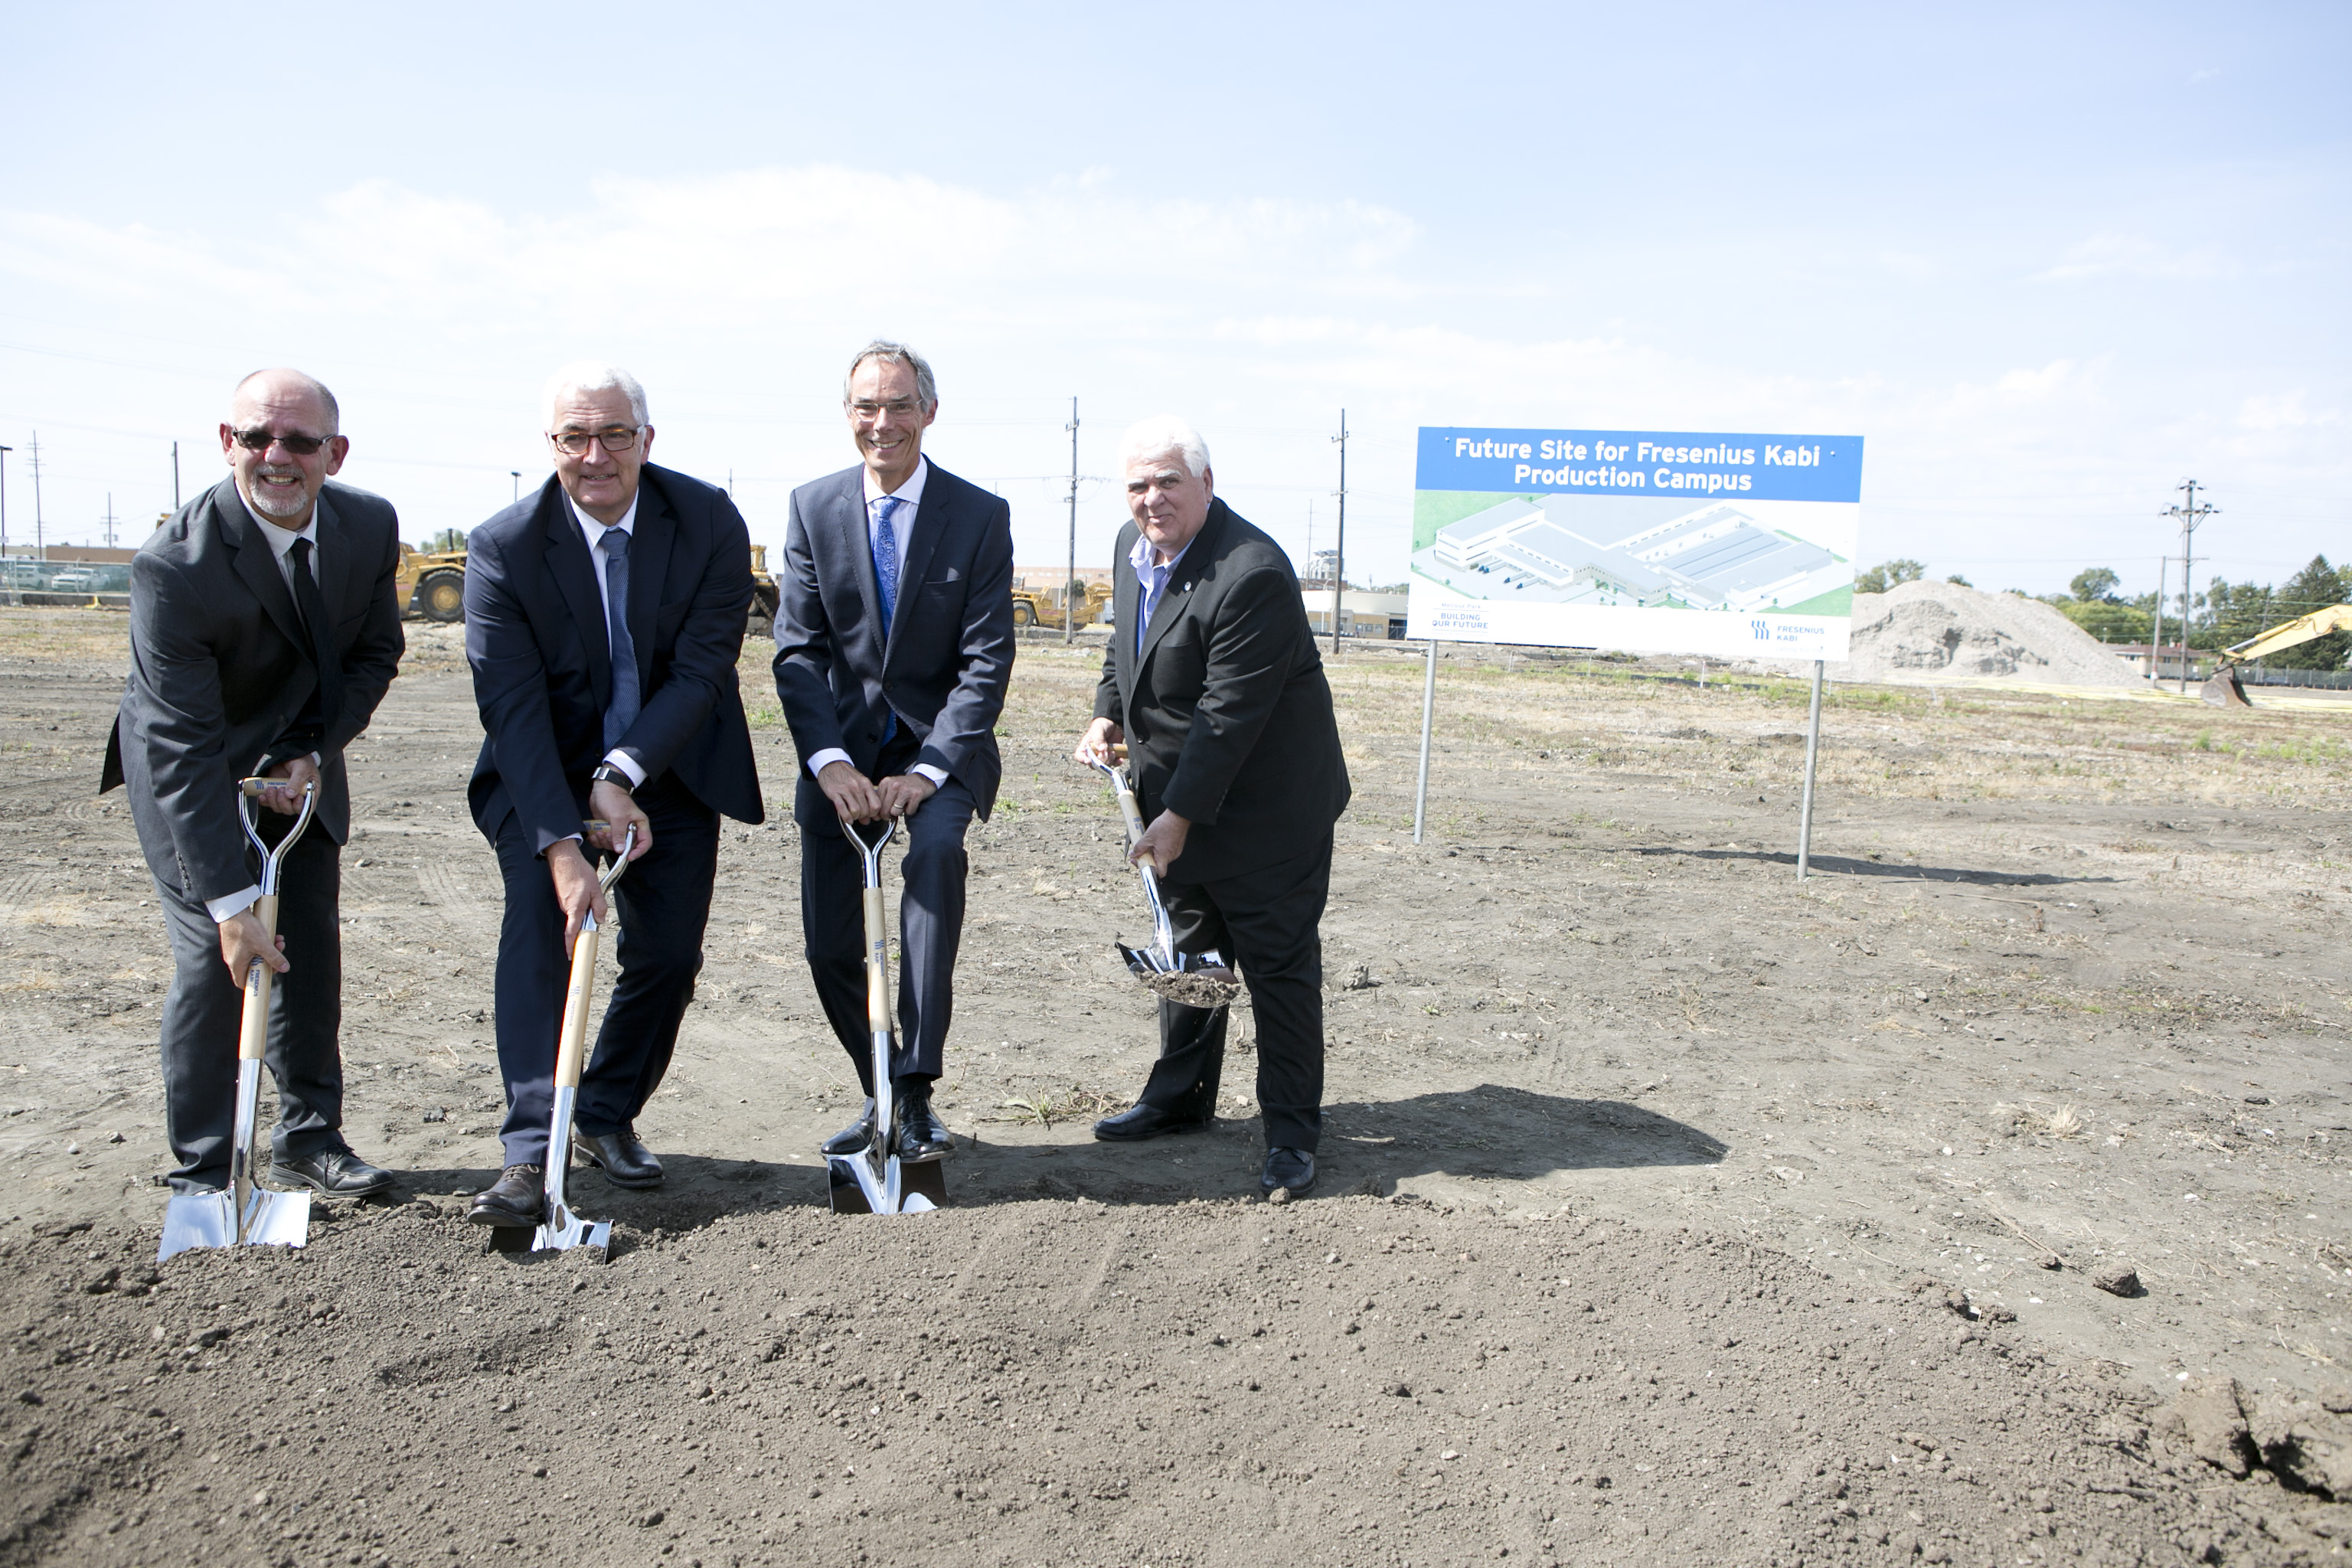 Fresenius Kabi Breaks Ground on $250 million Expansion of Pharmaceutical Manufacturing Site in Illinois